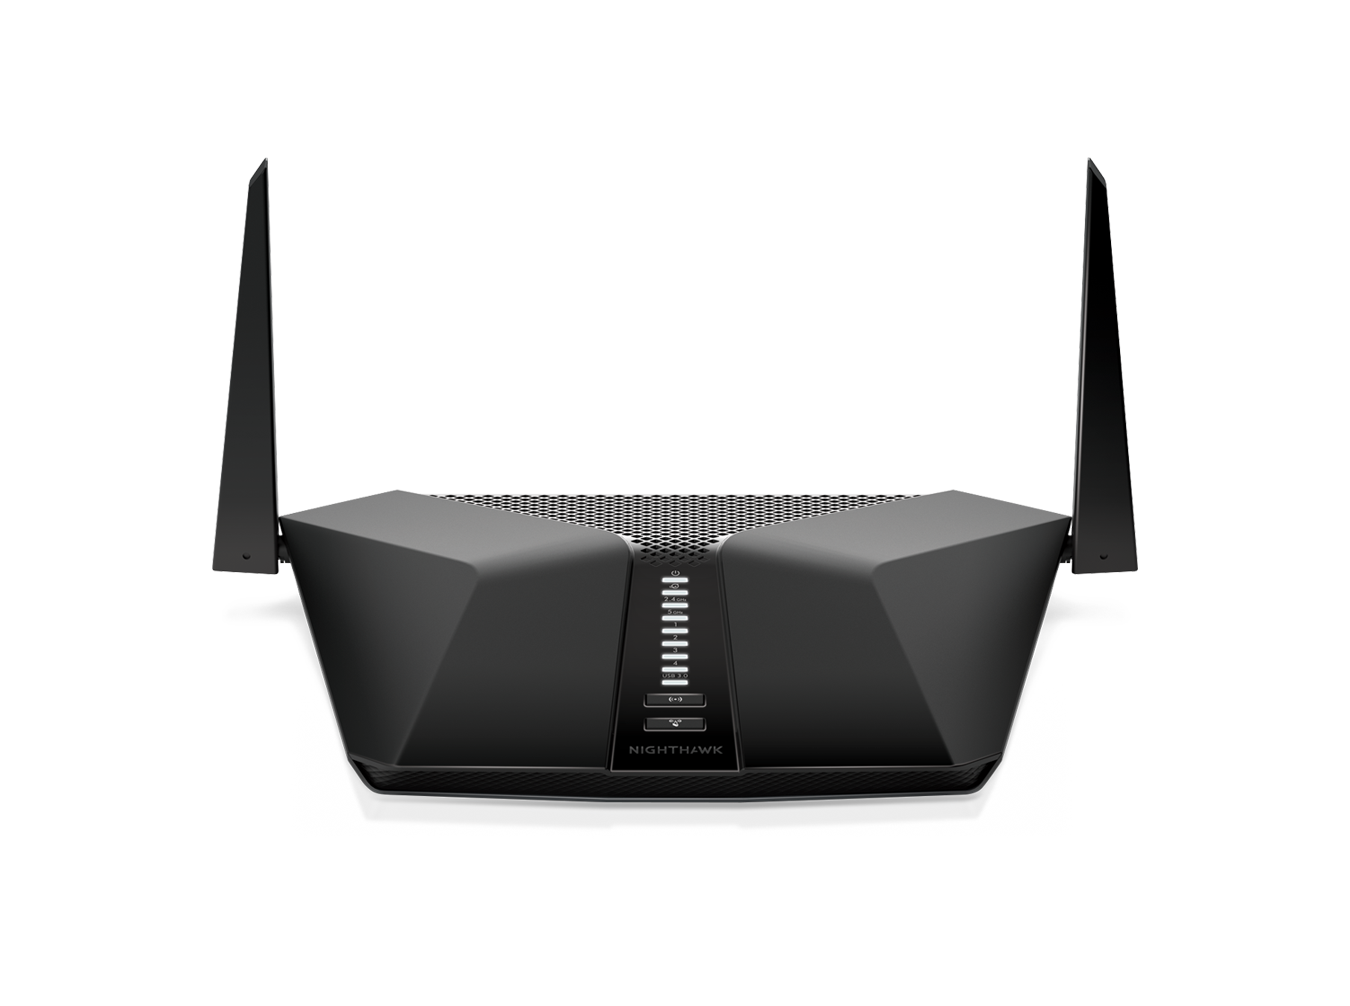 ROUTER WI-FI 6 NIGHTHAWK AX4 4 STREAM